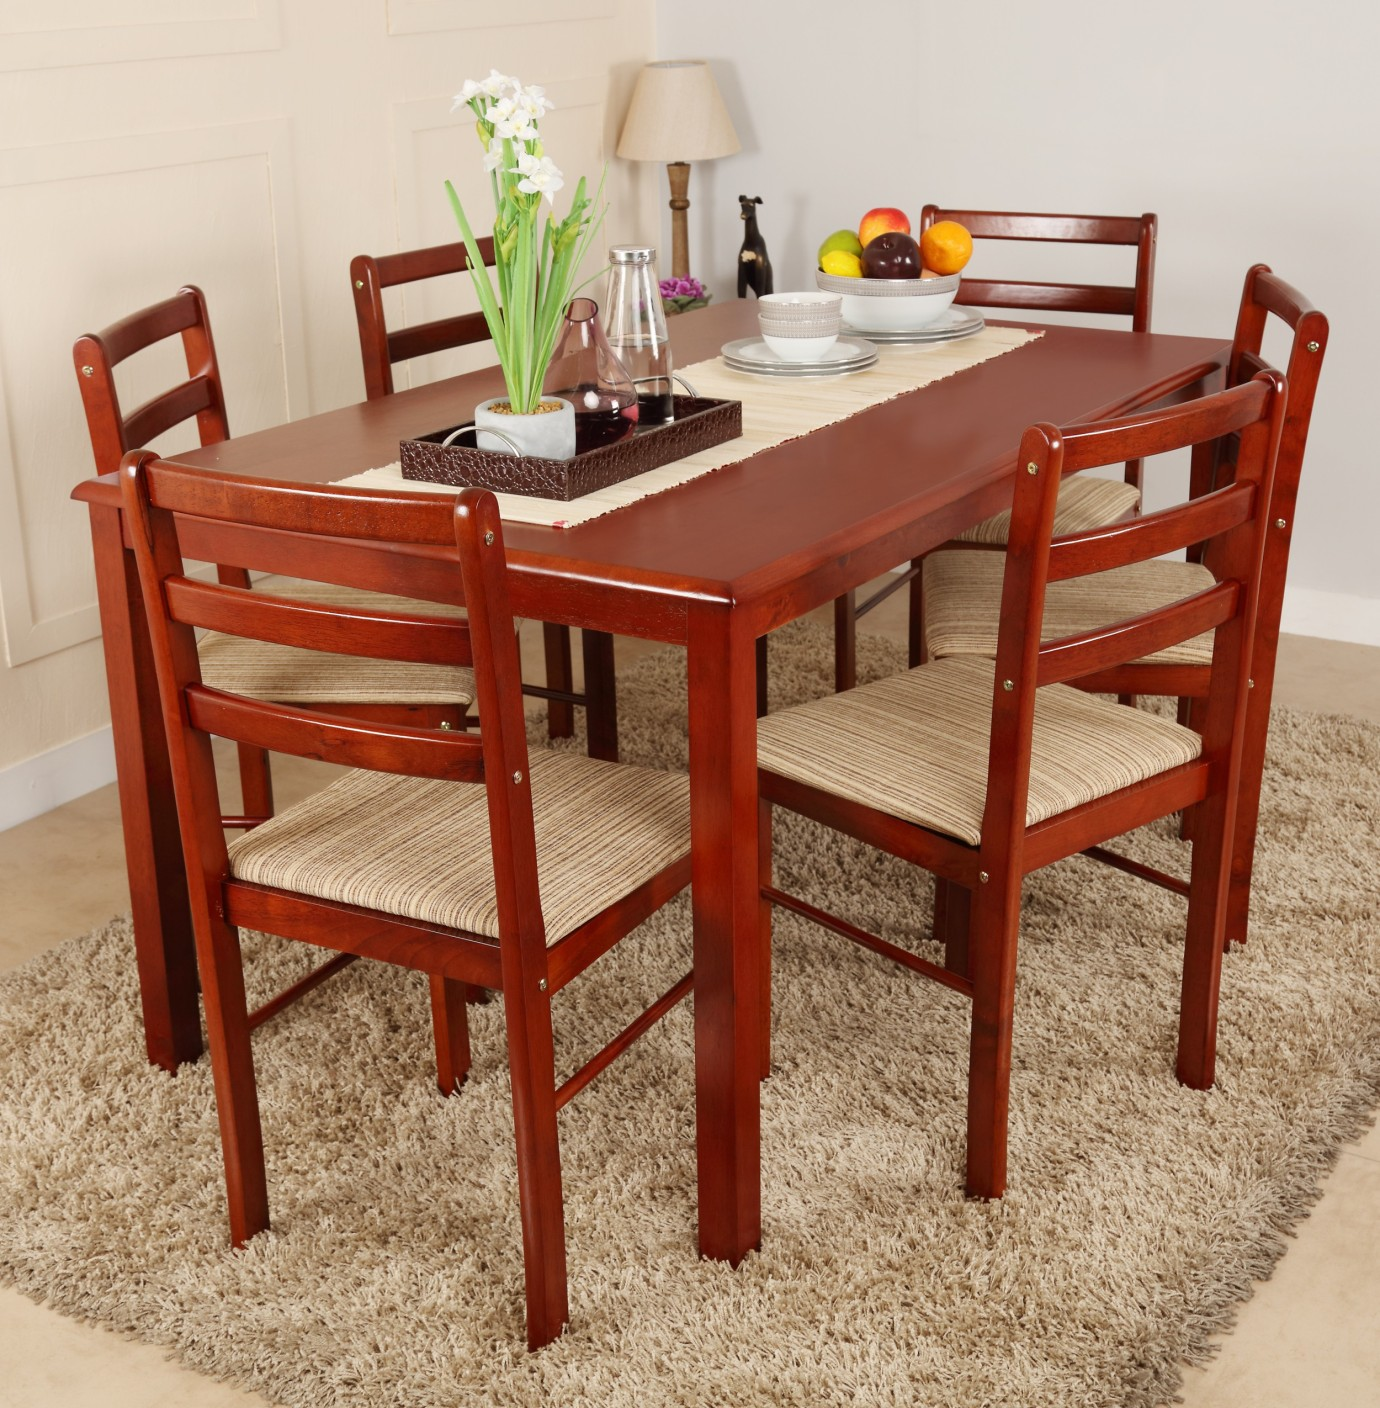 Woodness Solid Wood 6 Seater Dining Set Price in India  Buy Woodness Solid Wood 6 Seater Dining